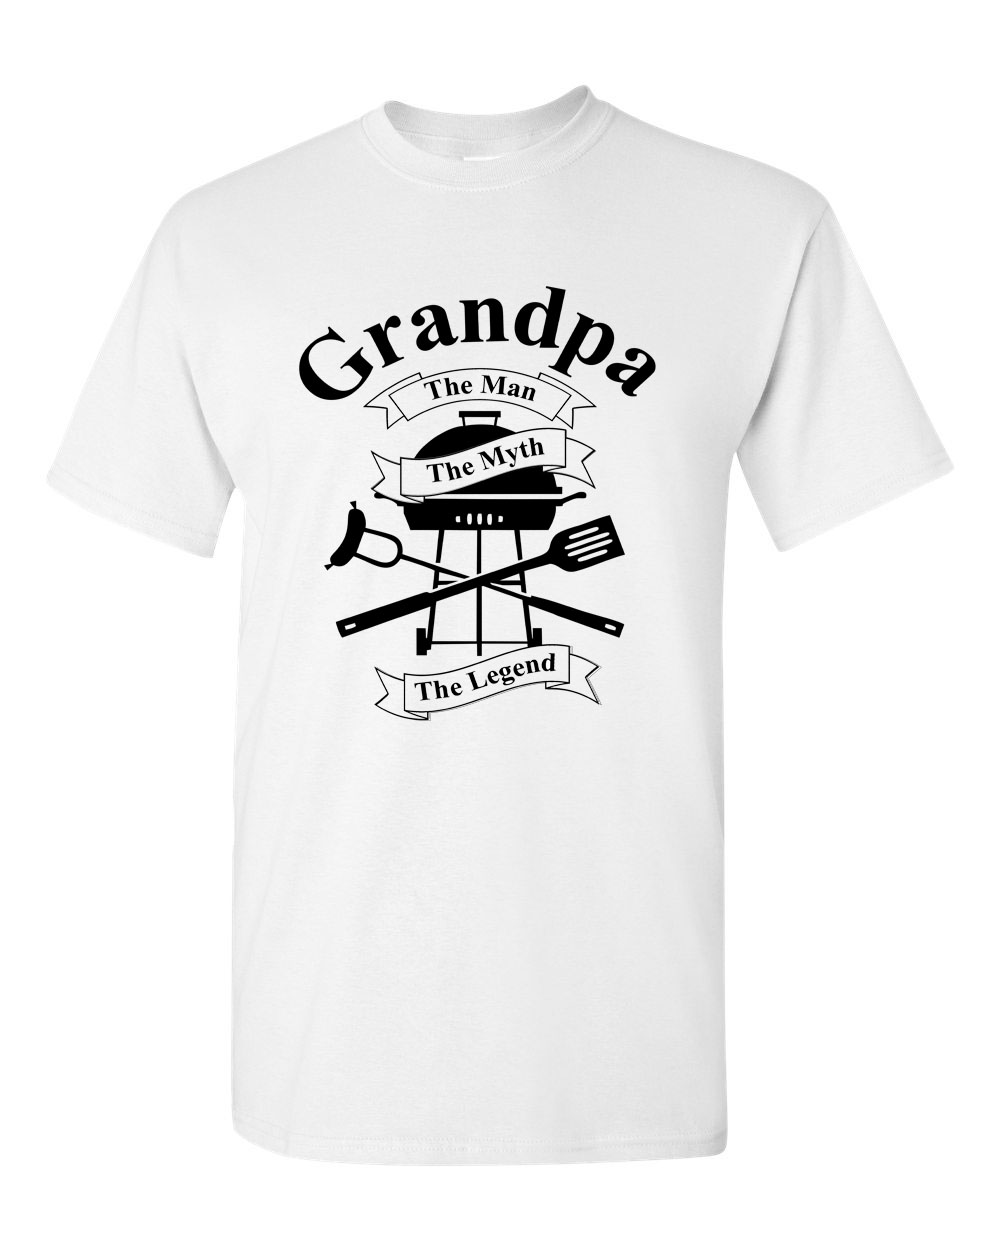 Grandpa The Man The Myth The Legend Barbeque BBQ Men's T Shirts Sizes S - 3XL